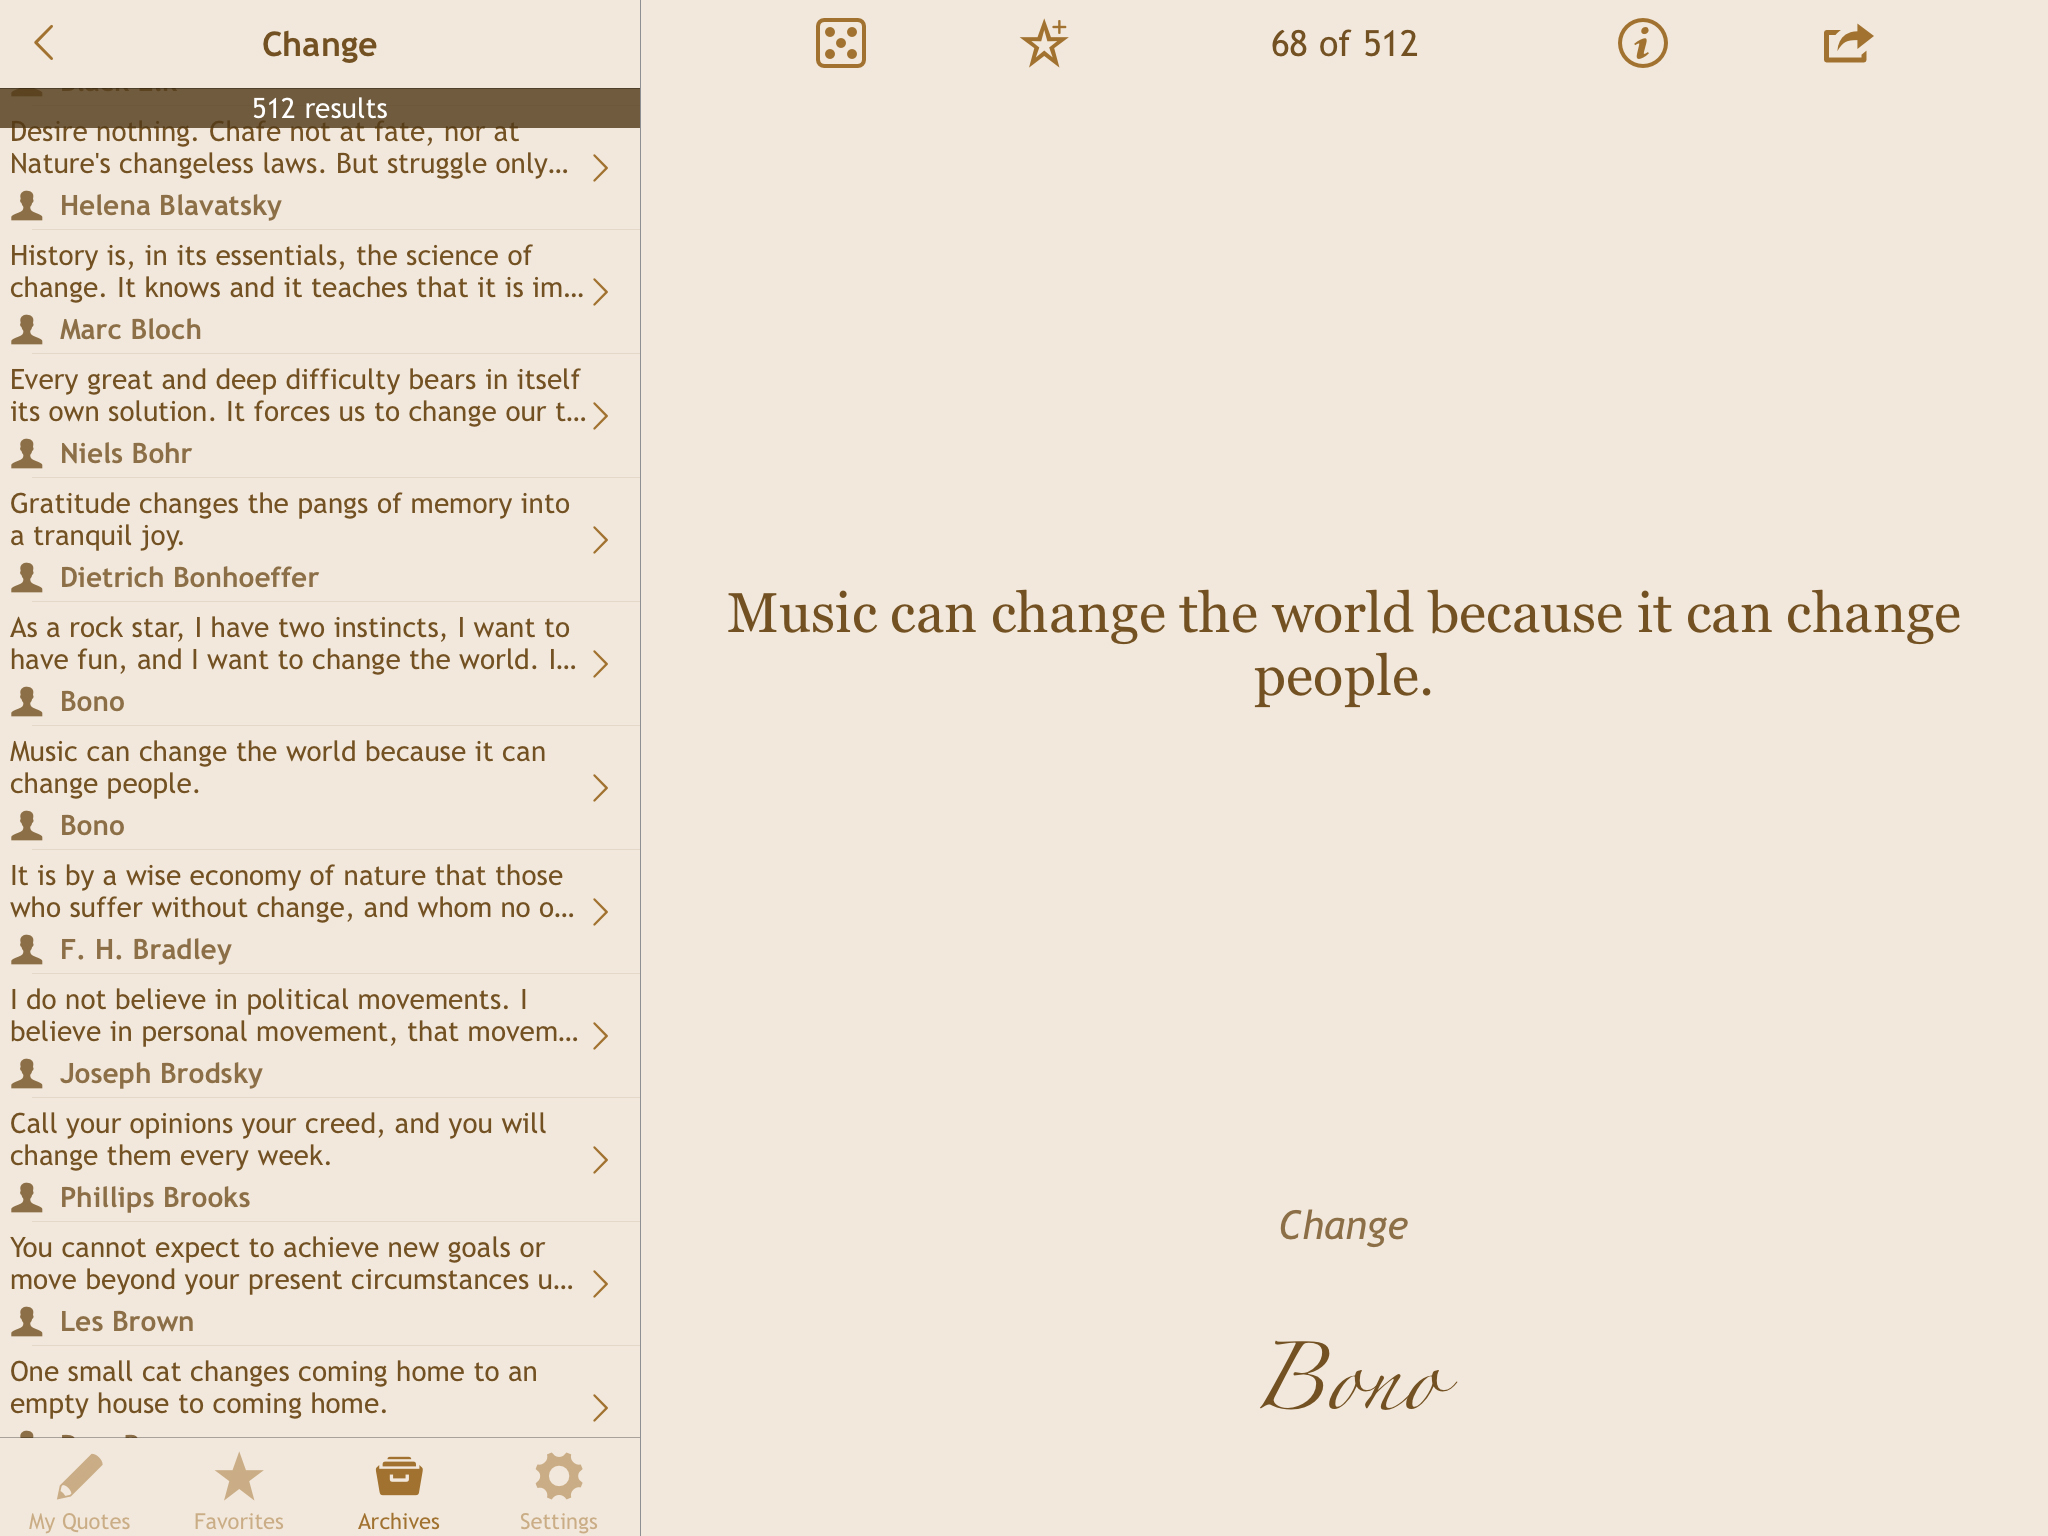 Explore and share quotations you love with Quotes Folder